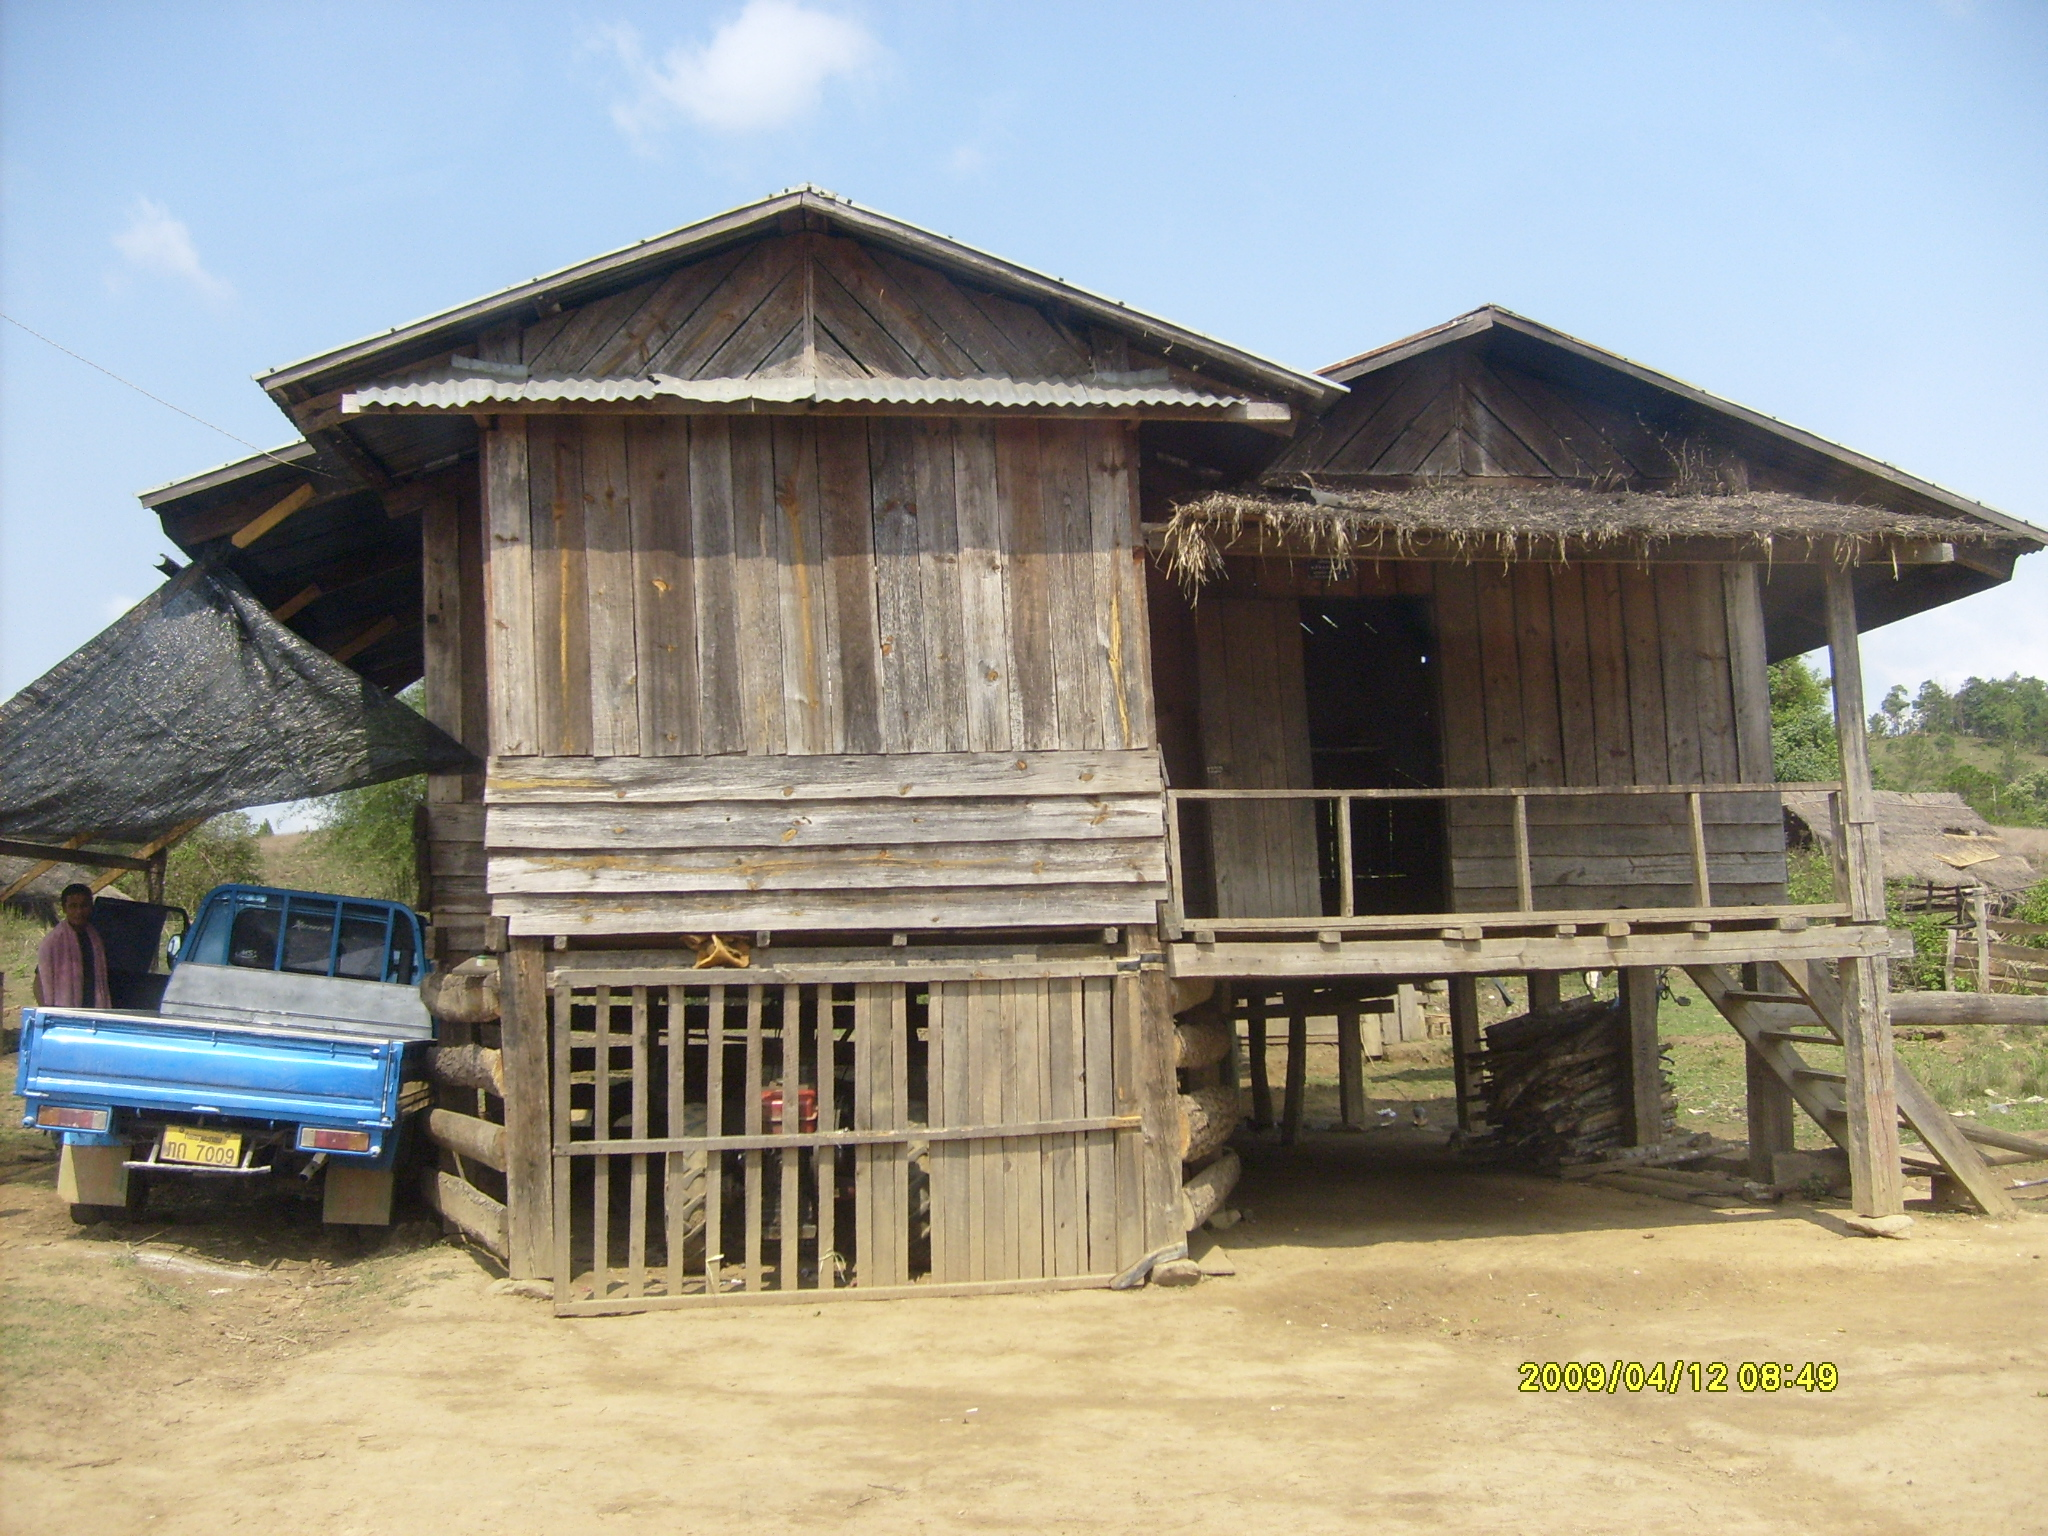 Houses are built on stilts, and the livestock live beneath. This structure helps protect against earthquake damage, and also is used for spiritual reasons.